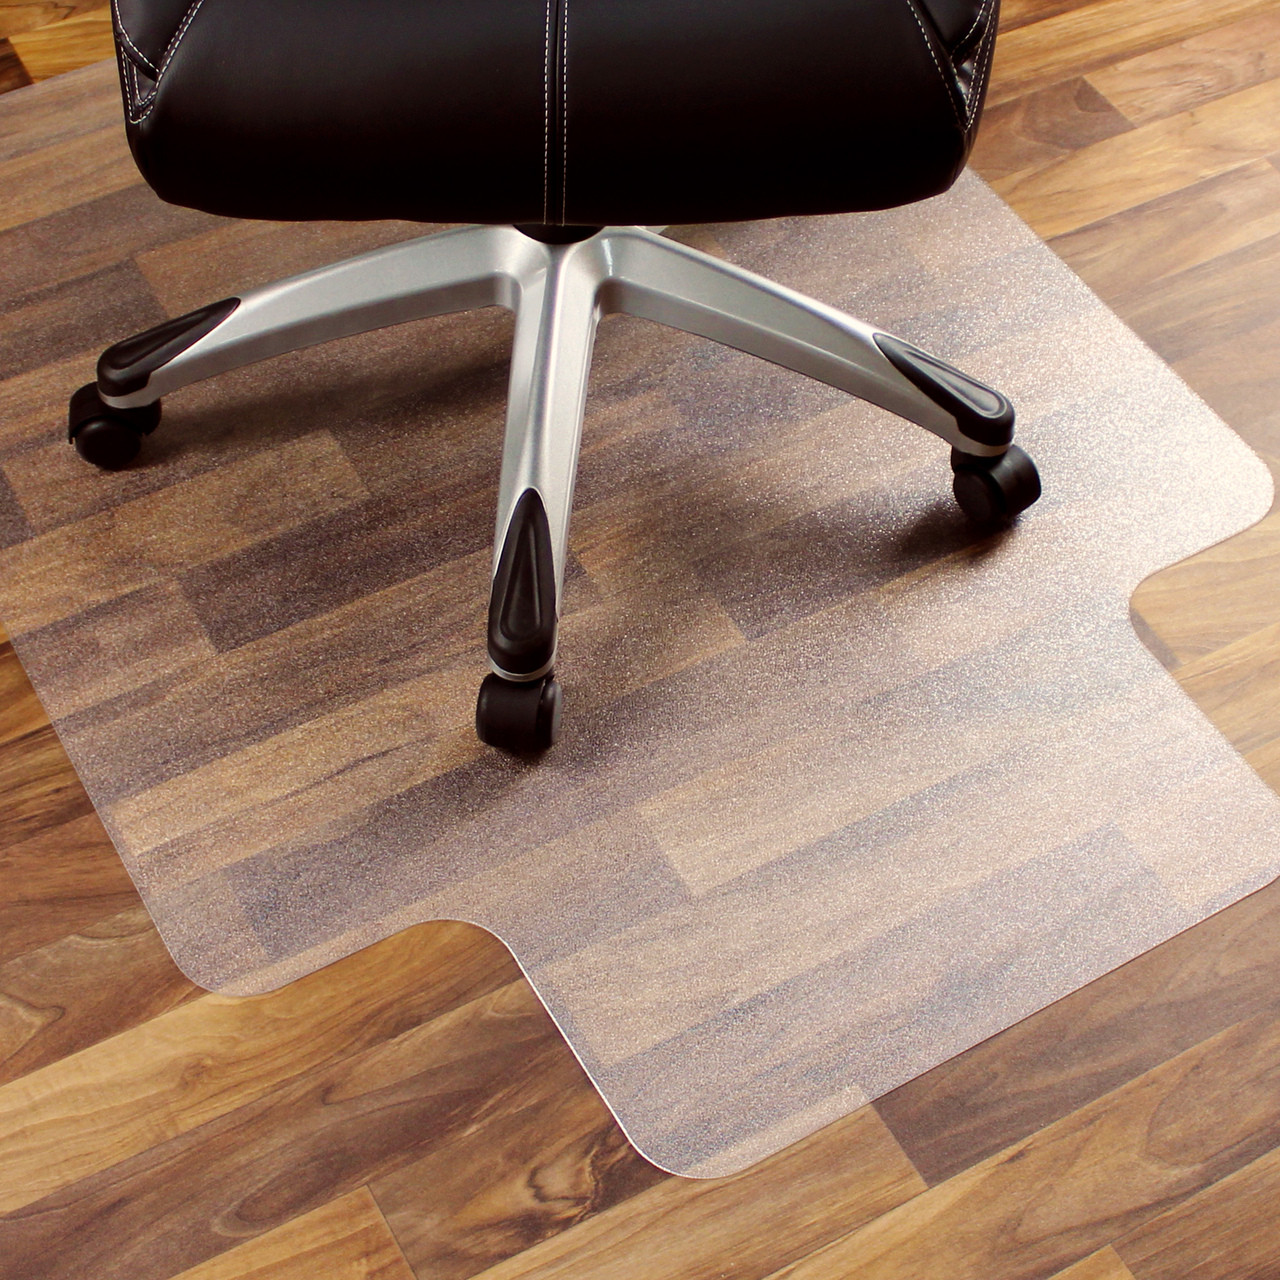 Lipped Chair Mat for Very Low Pile Carpets Marvelux 48 x 51 Vinyl PVC Transparent Carpet Protector Multiple Sizes